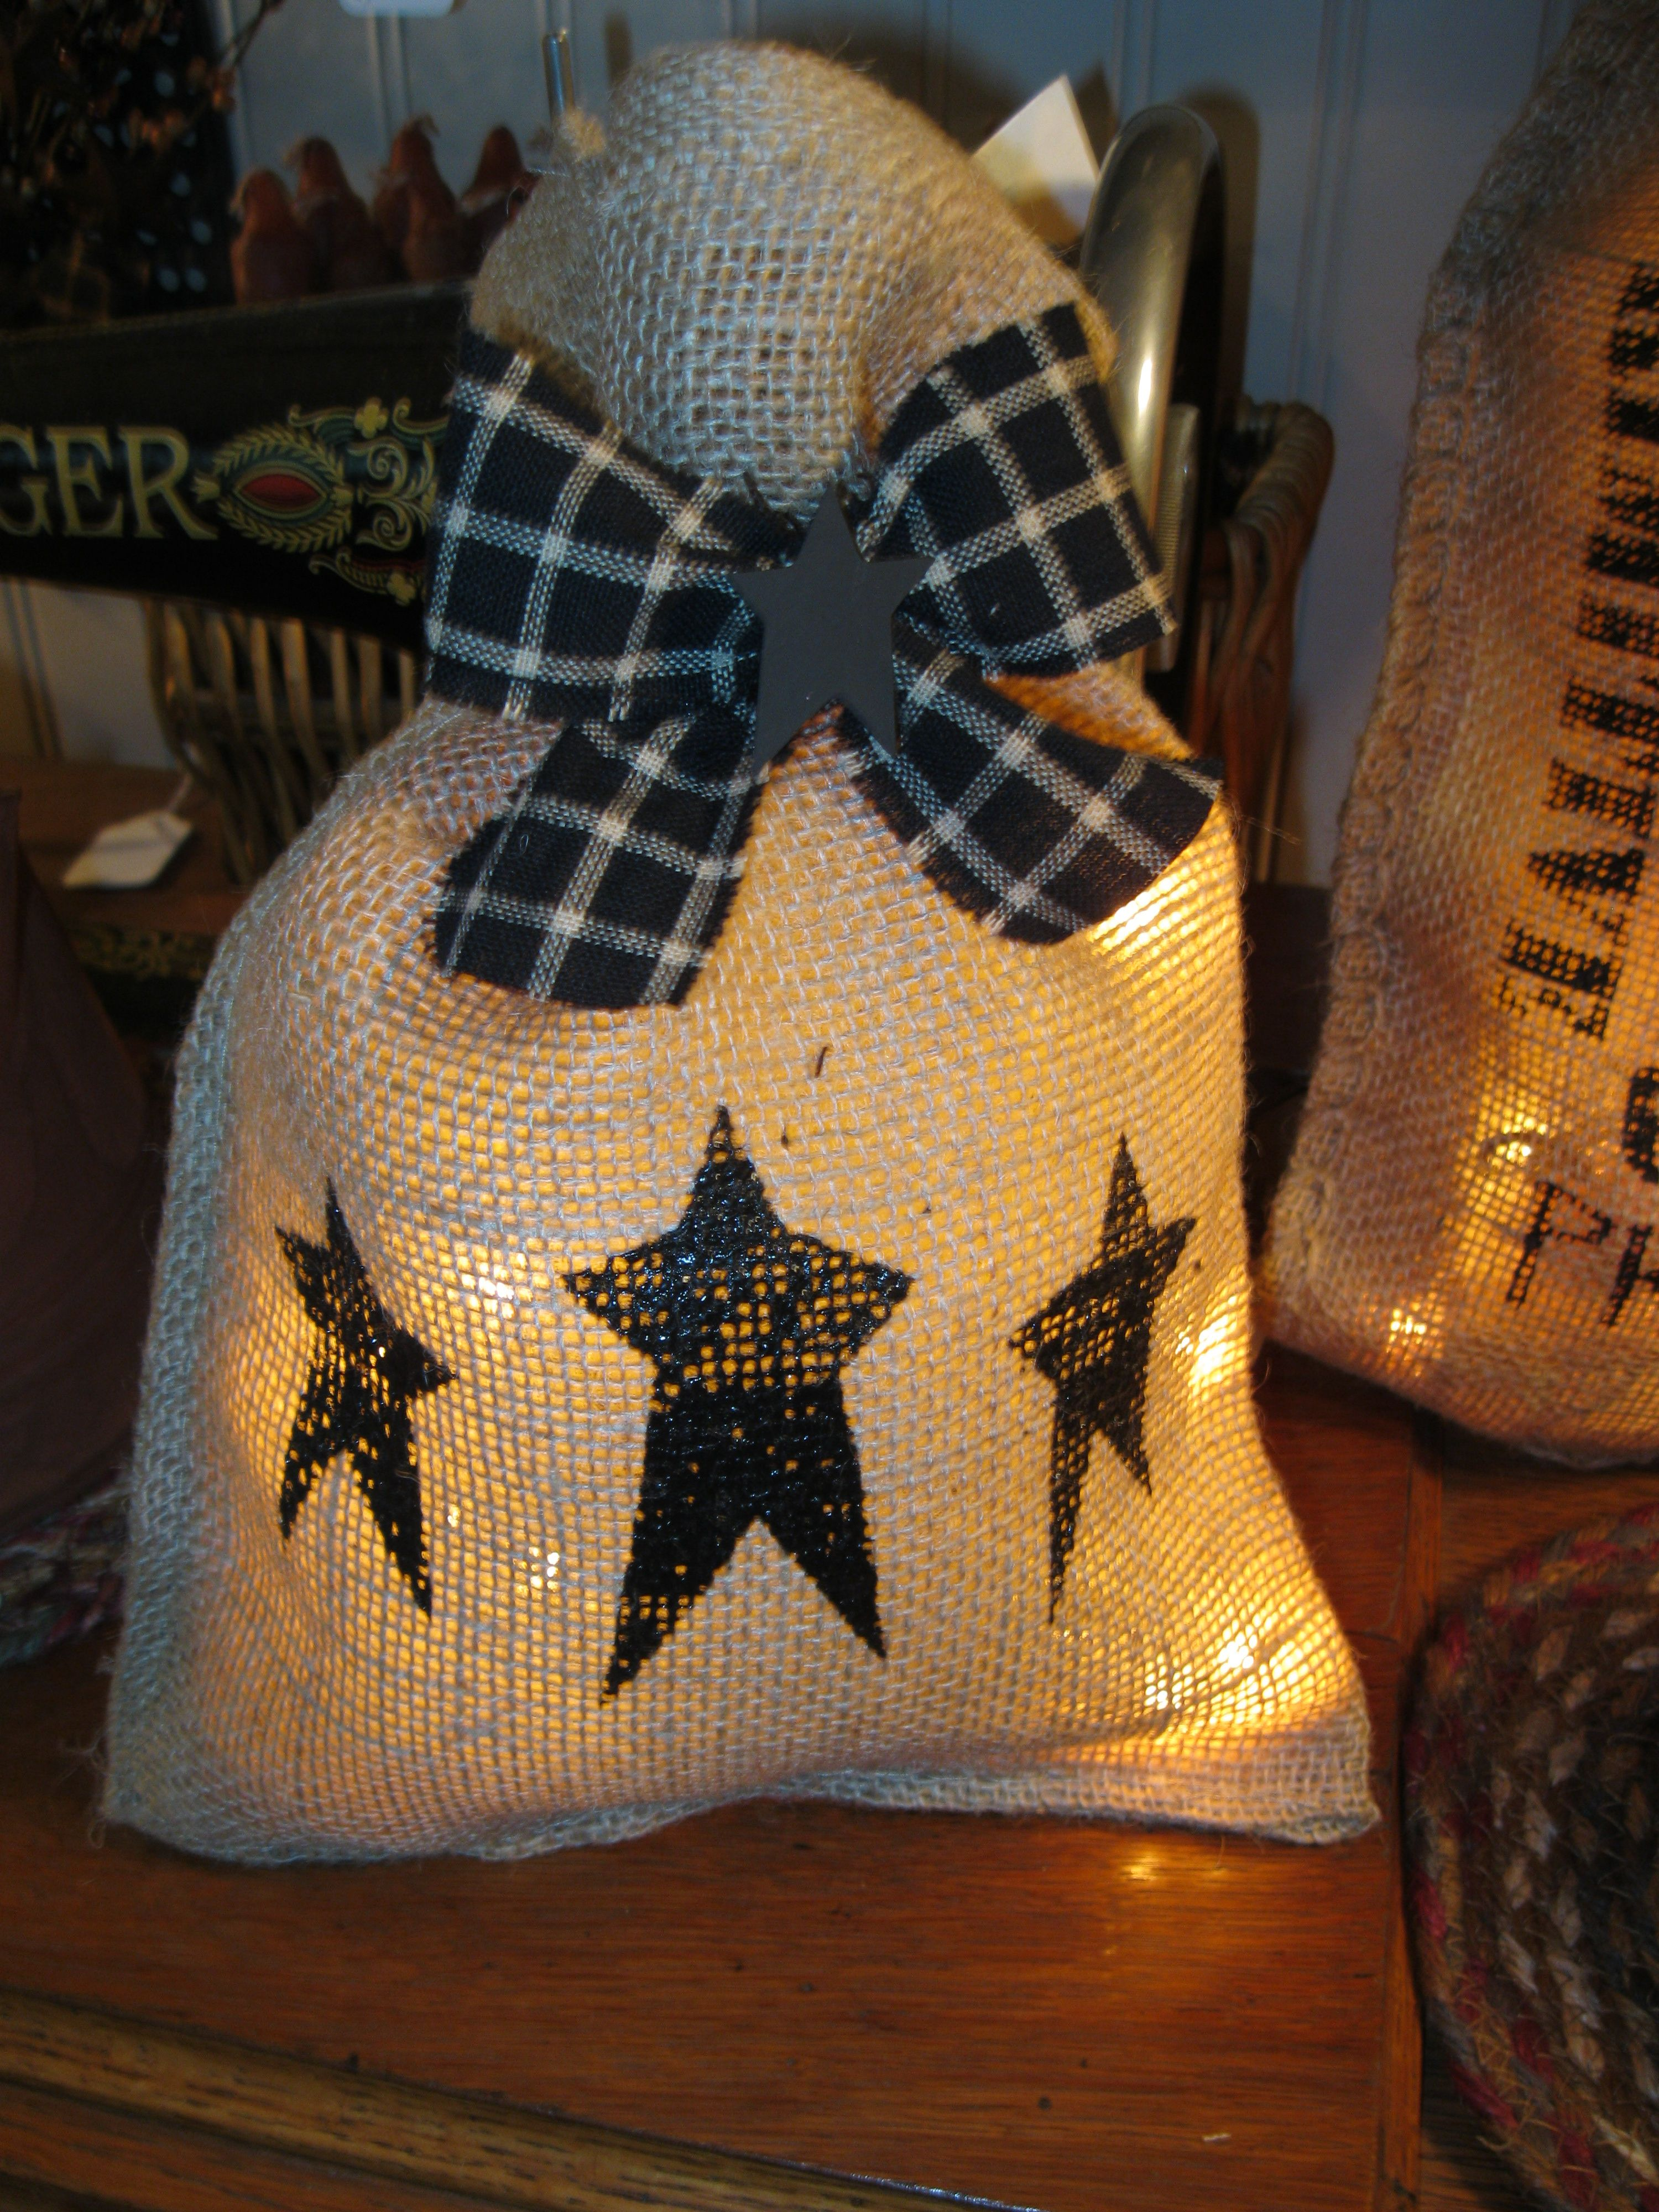 Lighted bag treasures by diane pinterest bag lights Burlap bag decorating ideas